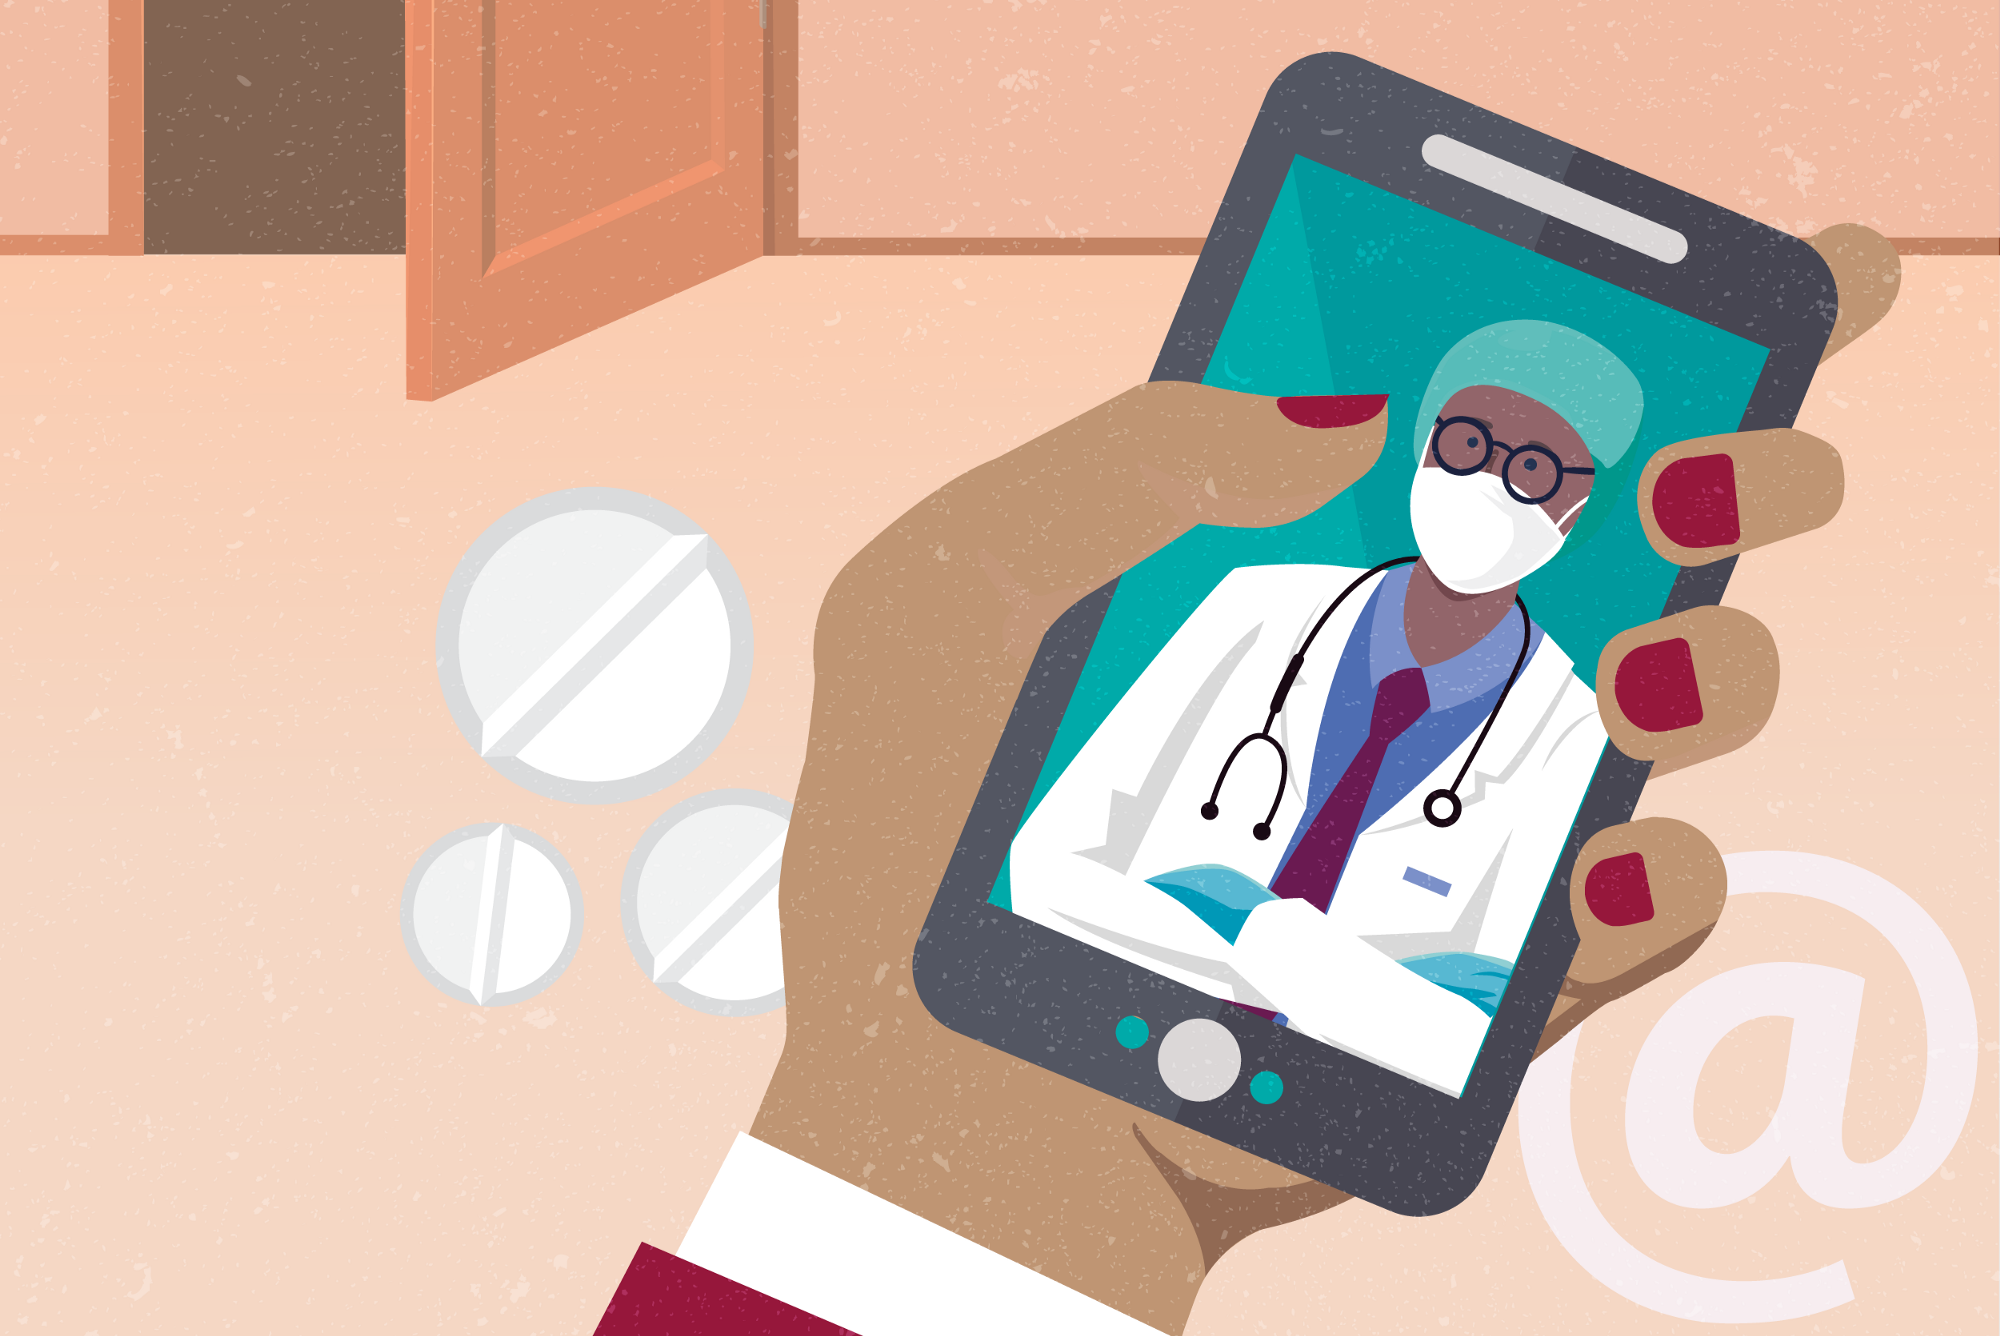 An illustration of a hand holding a mobile phone with a doctor on the screen, surround by medicine